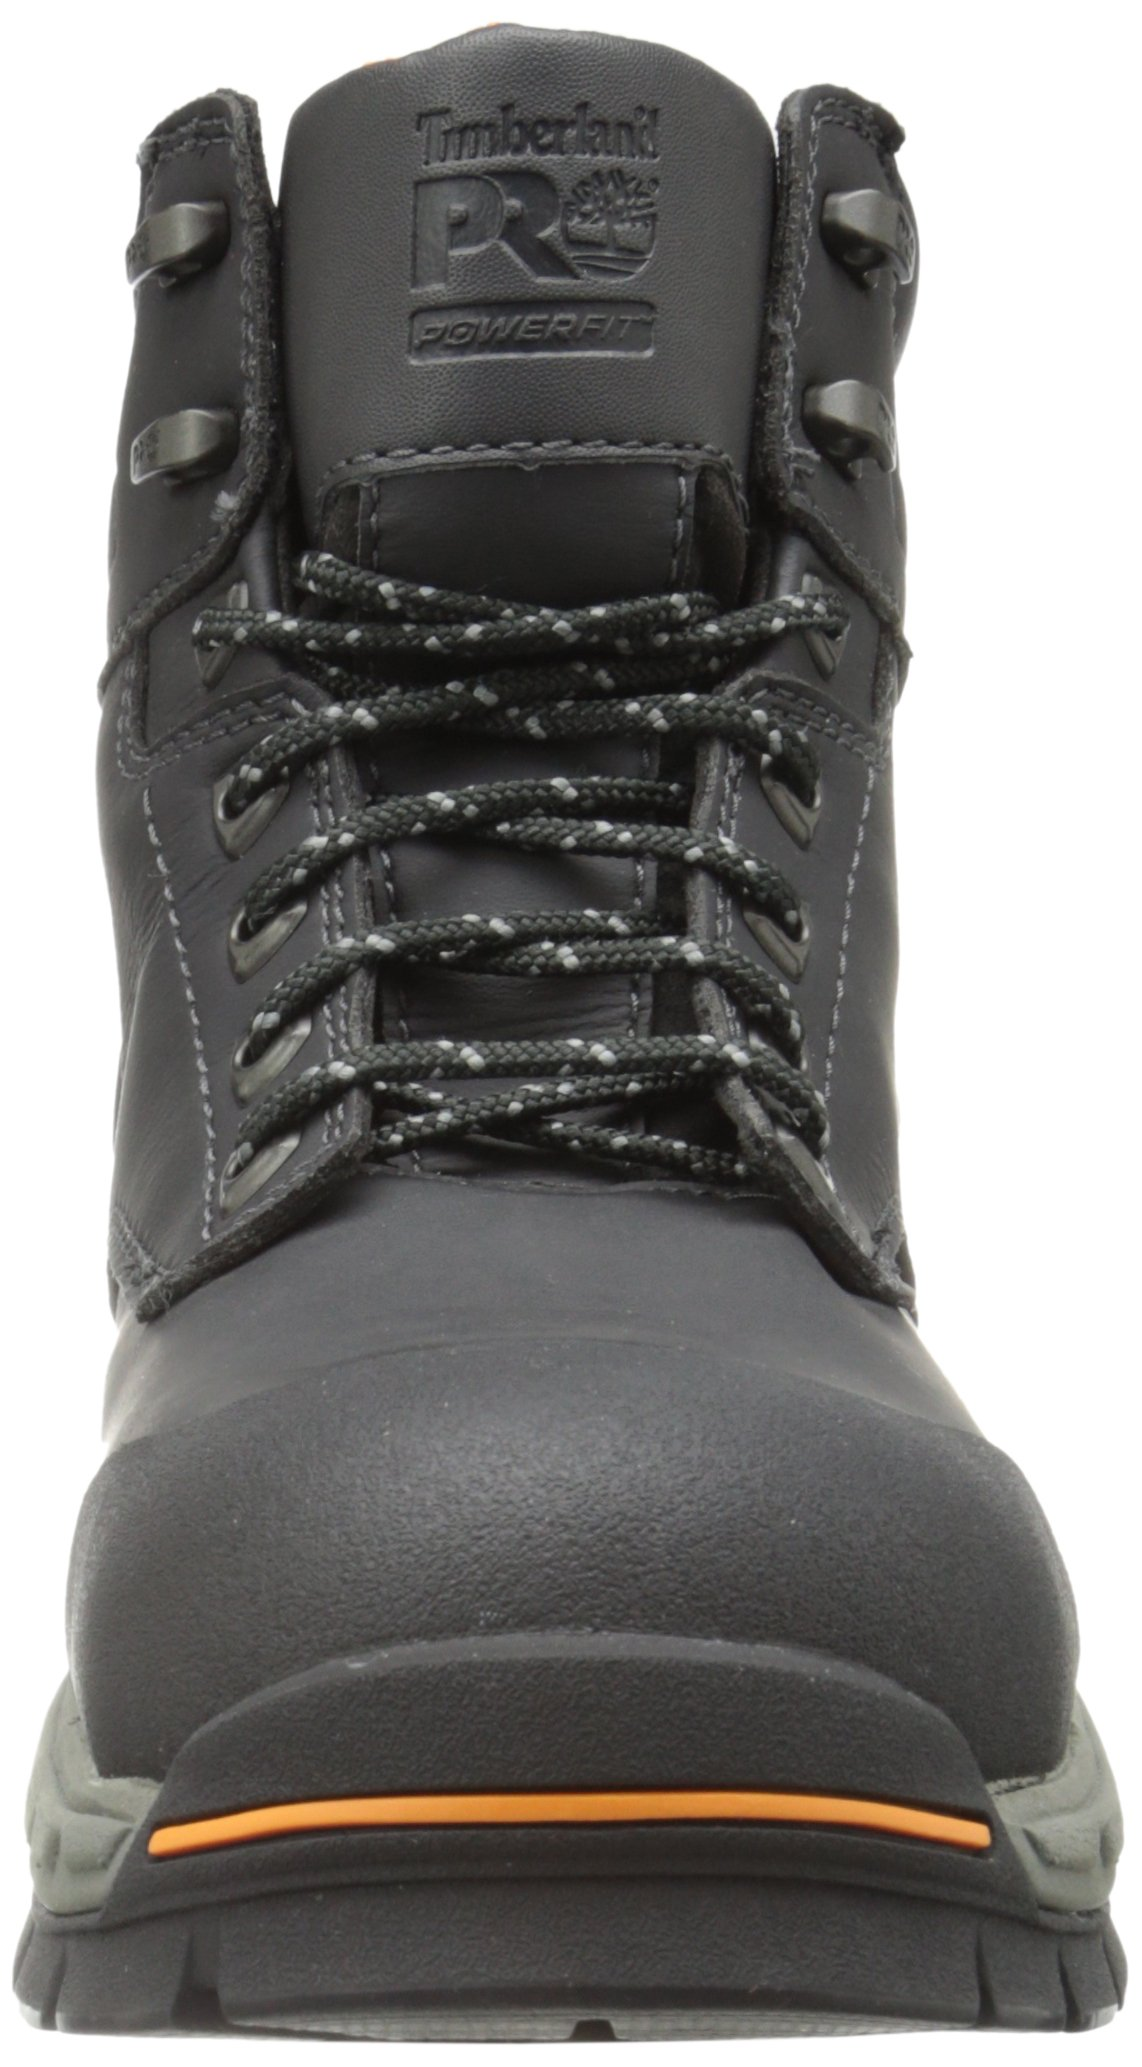 Timberland PRO Men's 6 Inch Stockdale Grip Max Alloy Toe Work and Hunt Boot, Black Microfiber, 5.5 M US by Timberland PRO (Image #4)